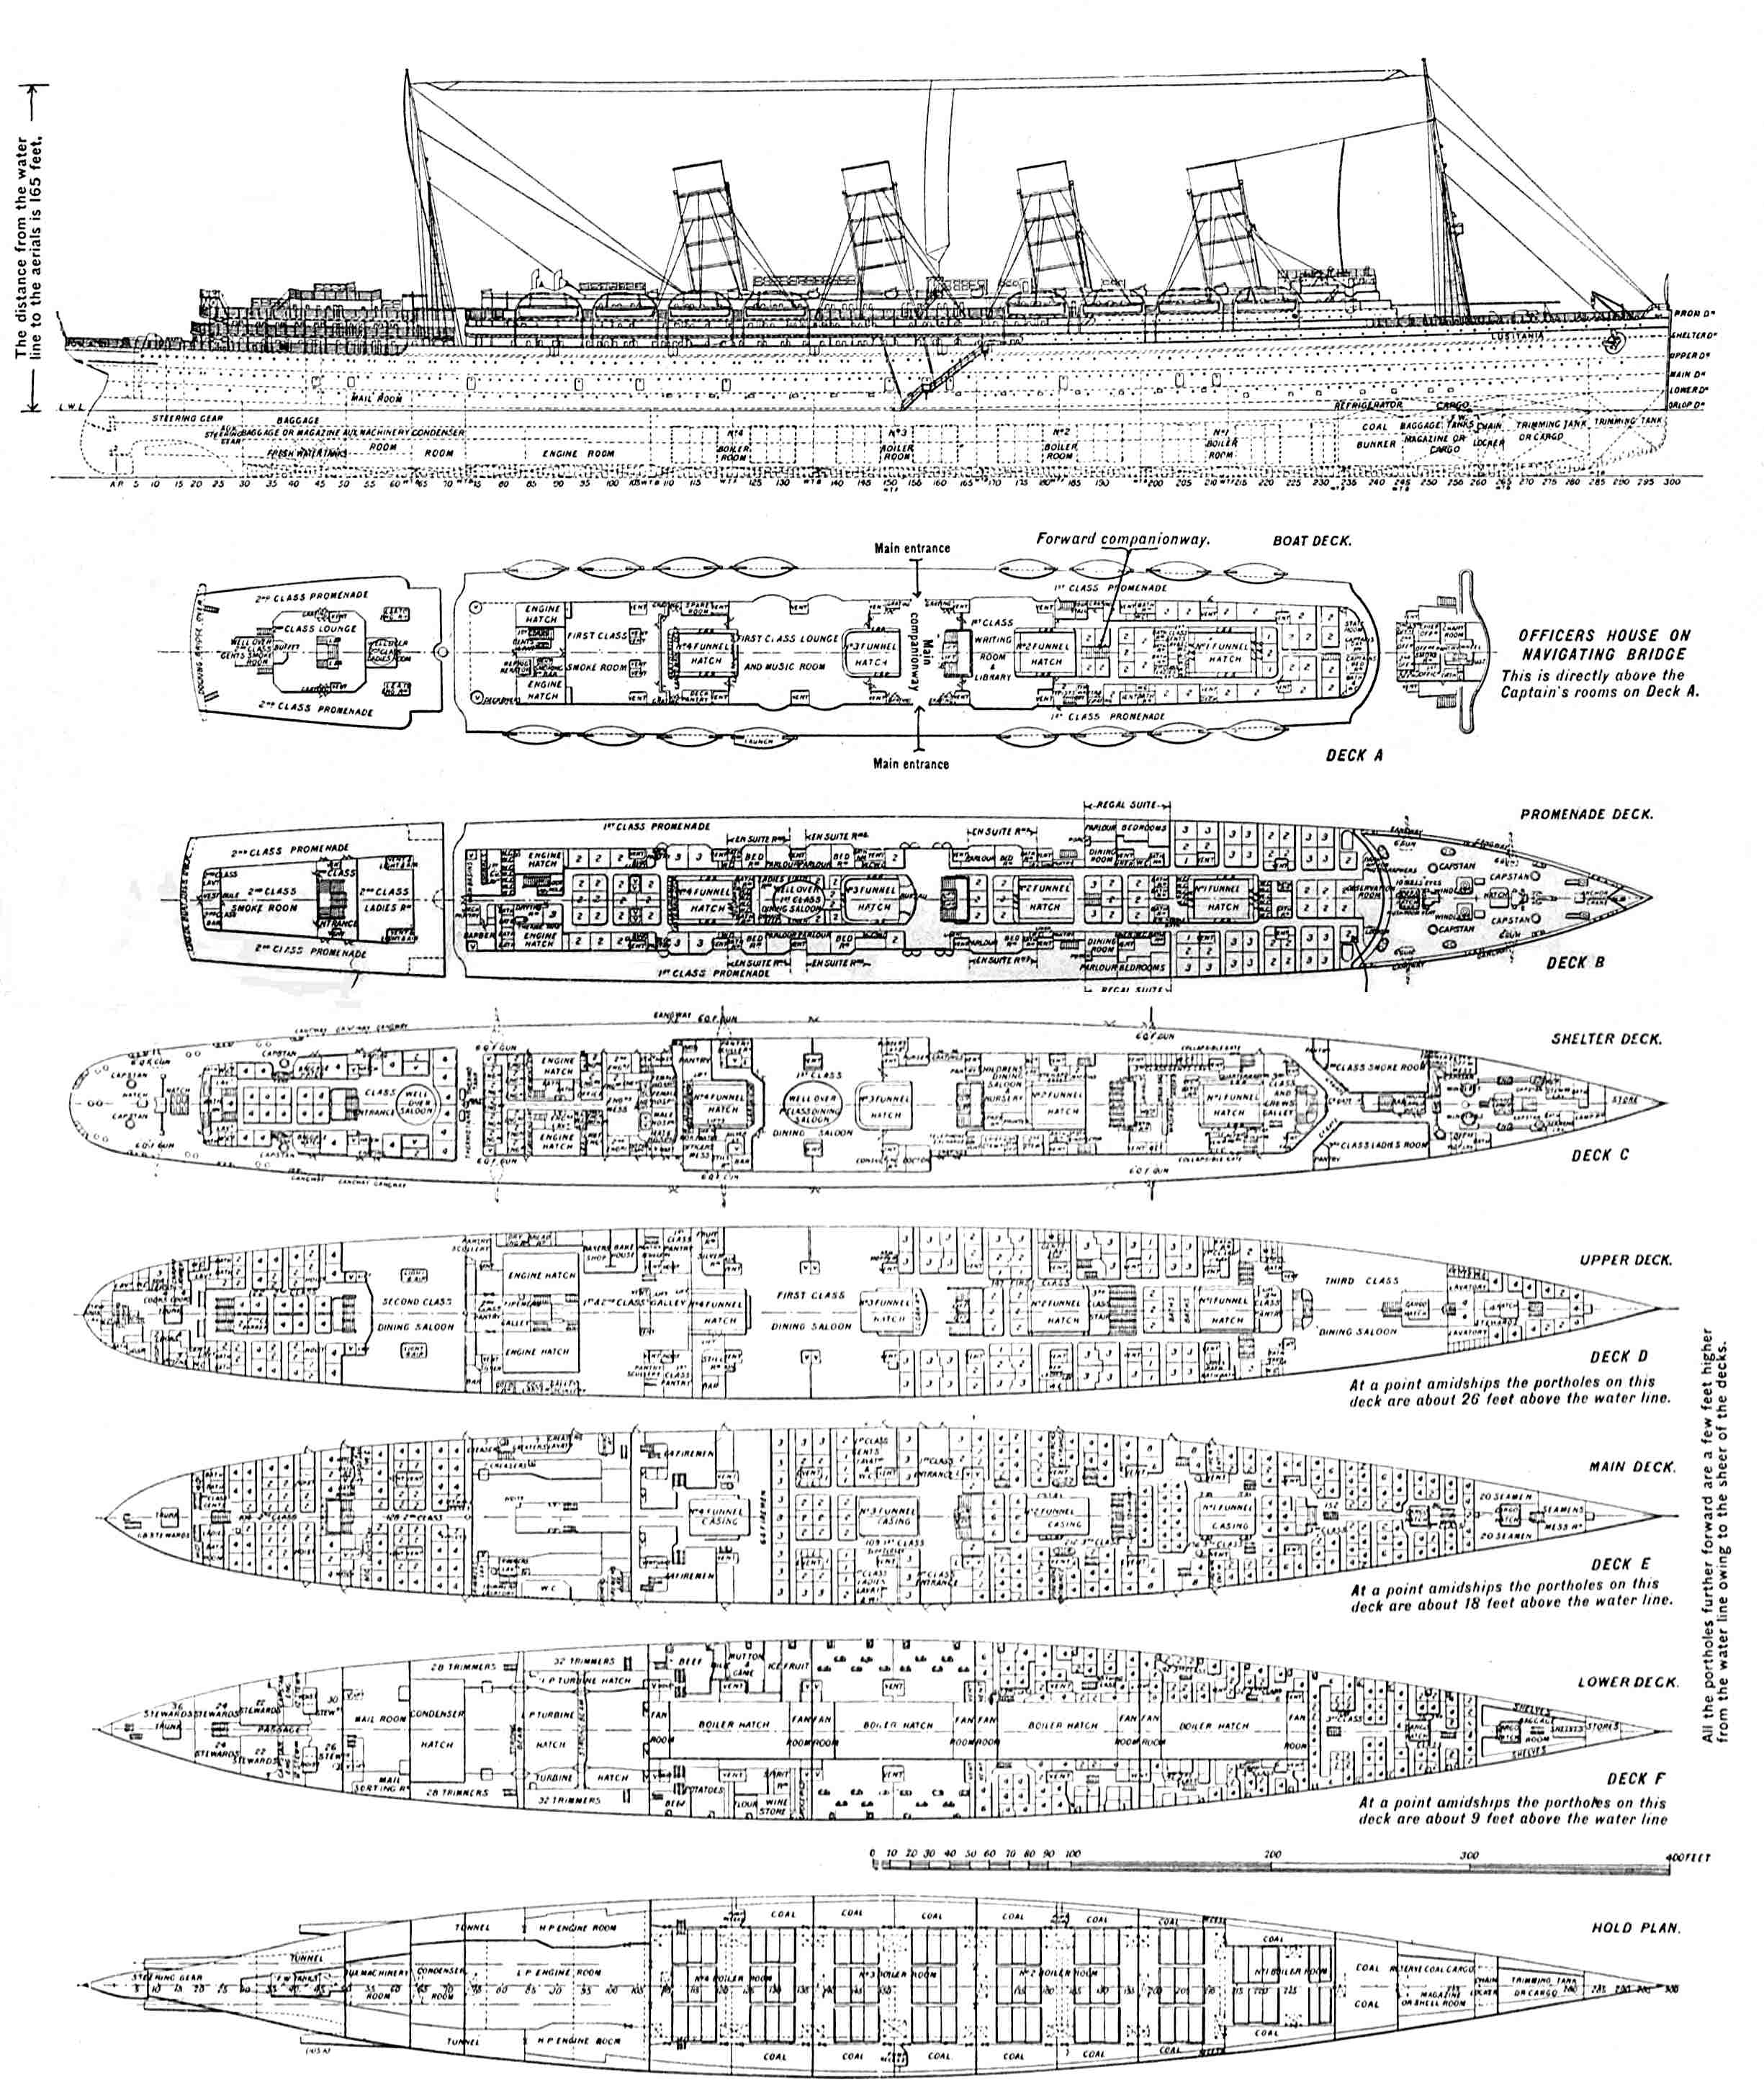 File:RMS Lusitania deck plans.jpg - Wikimedia Commons